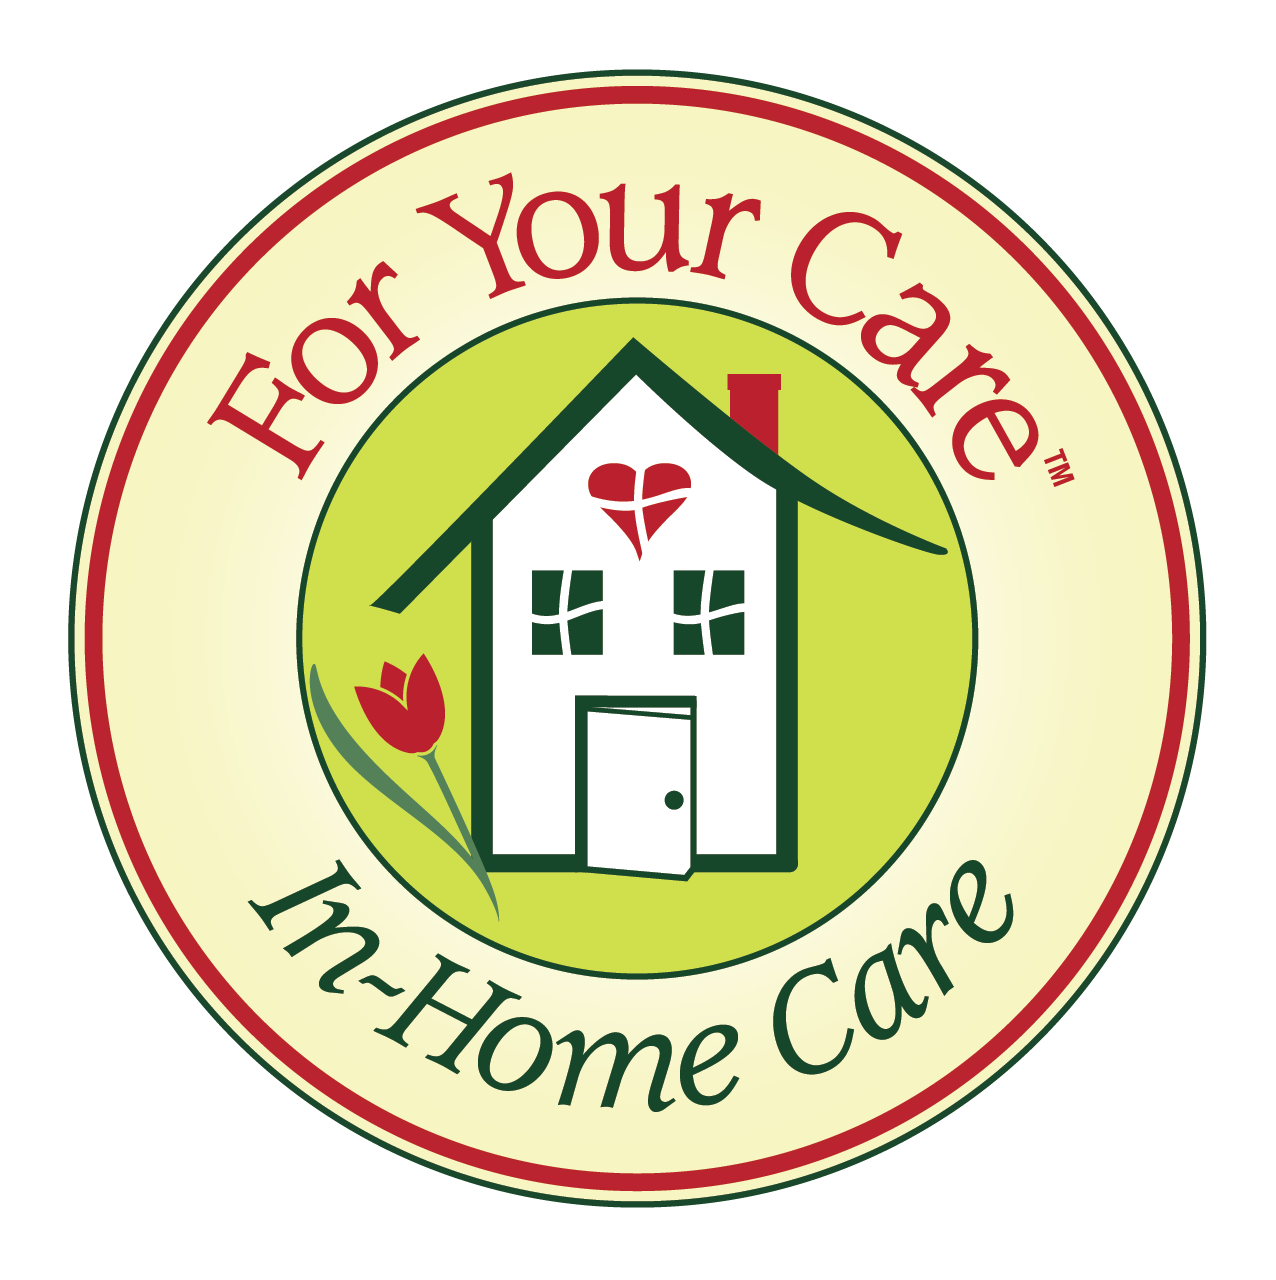 For Your Care logo